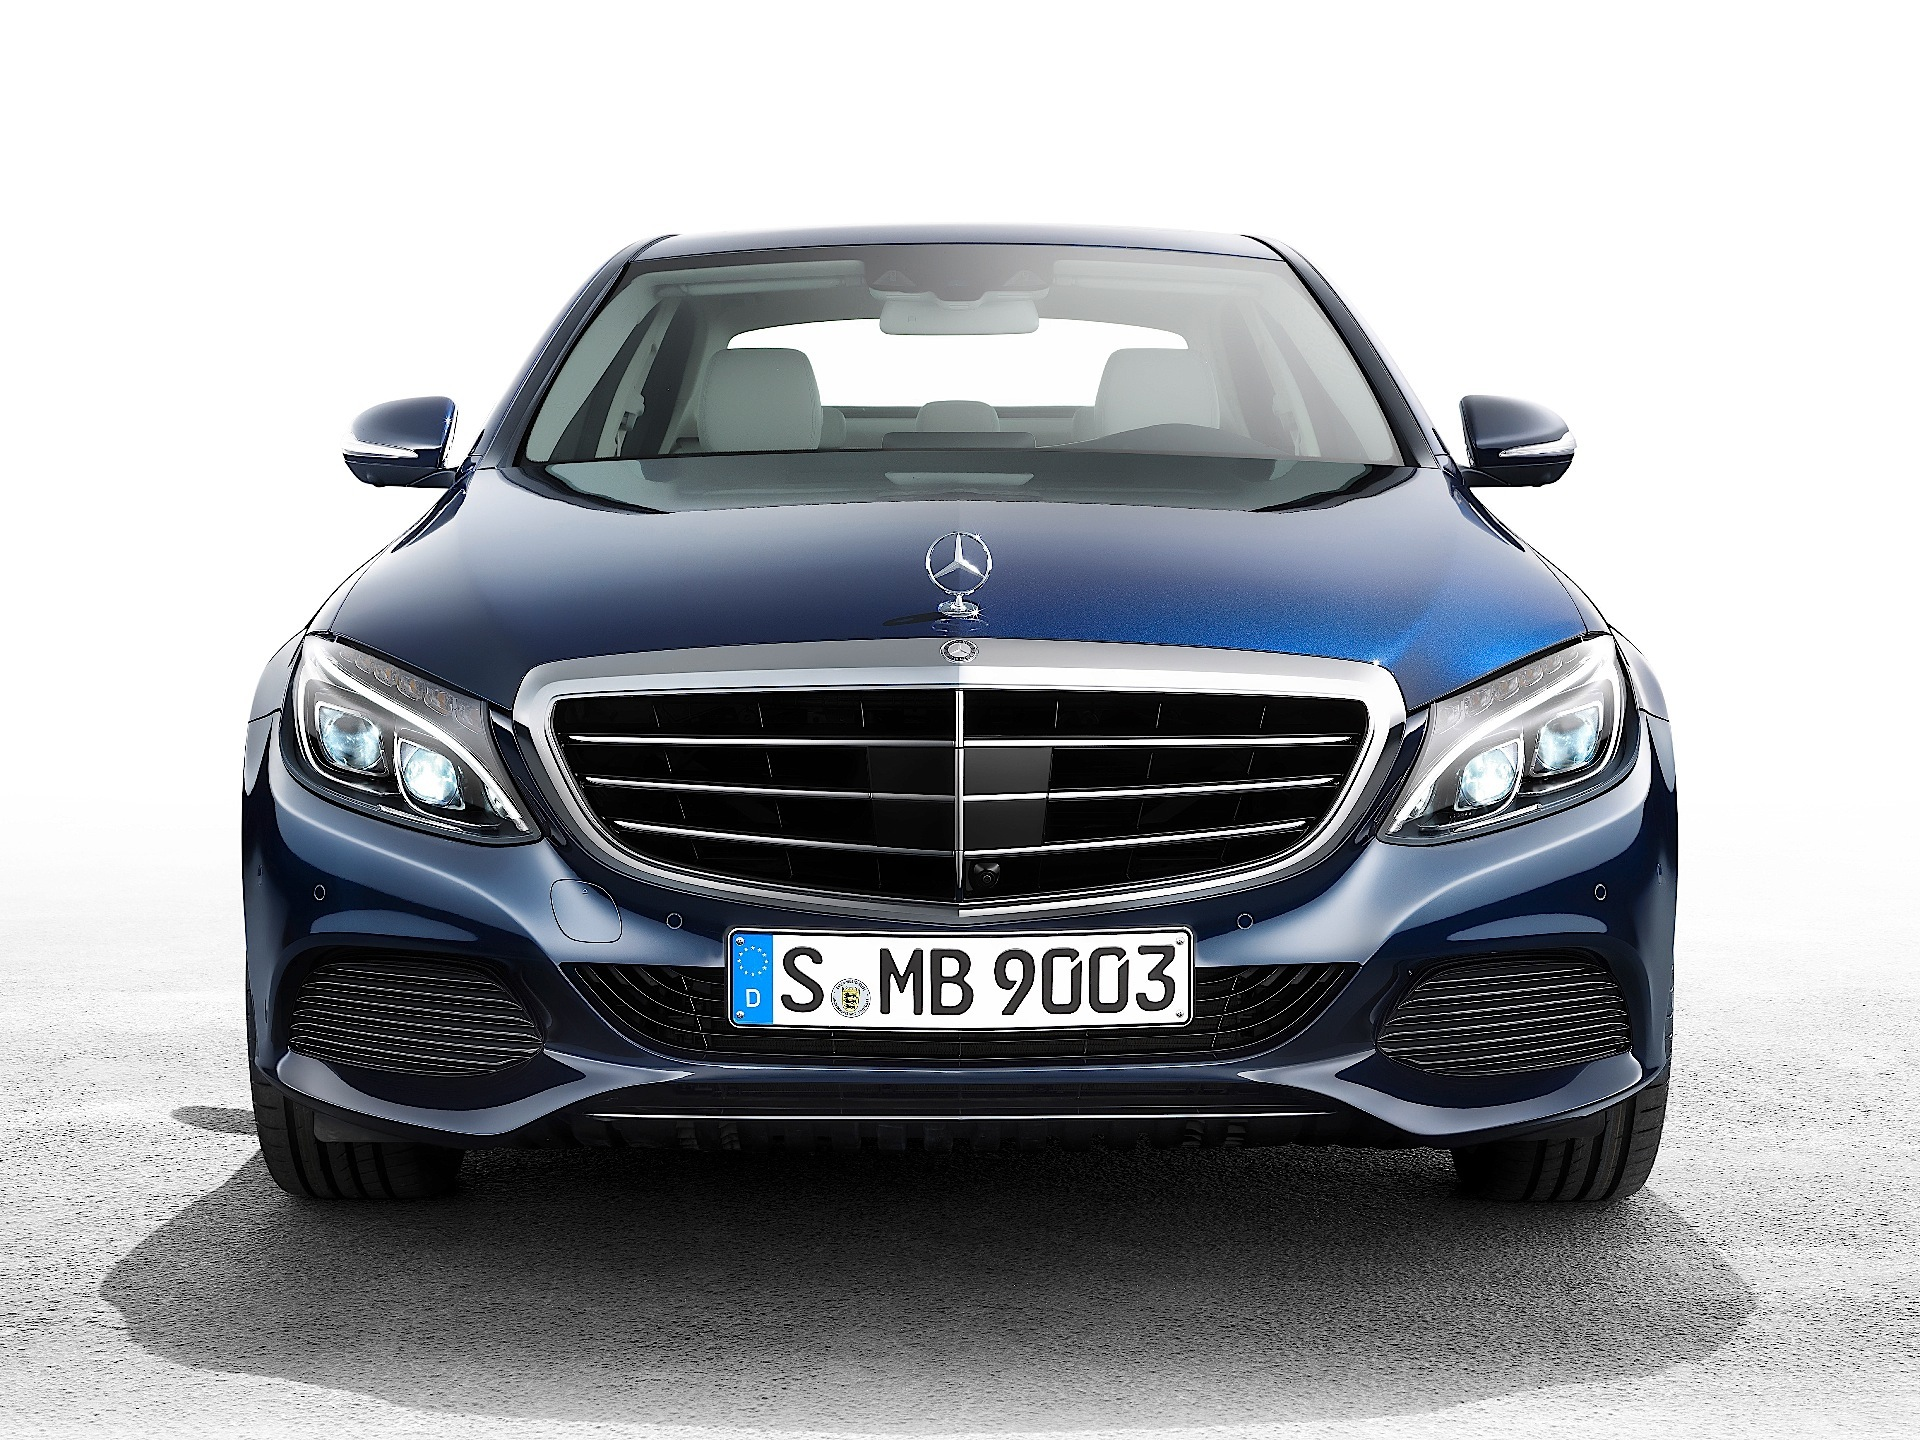 Mercedes benz c class w205 specs 2014 2015 2016 for Mercedes benz c classes